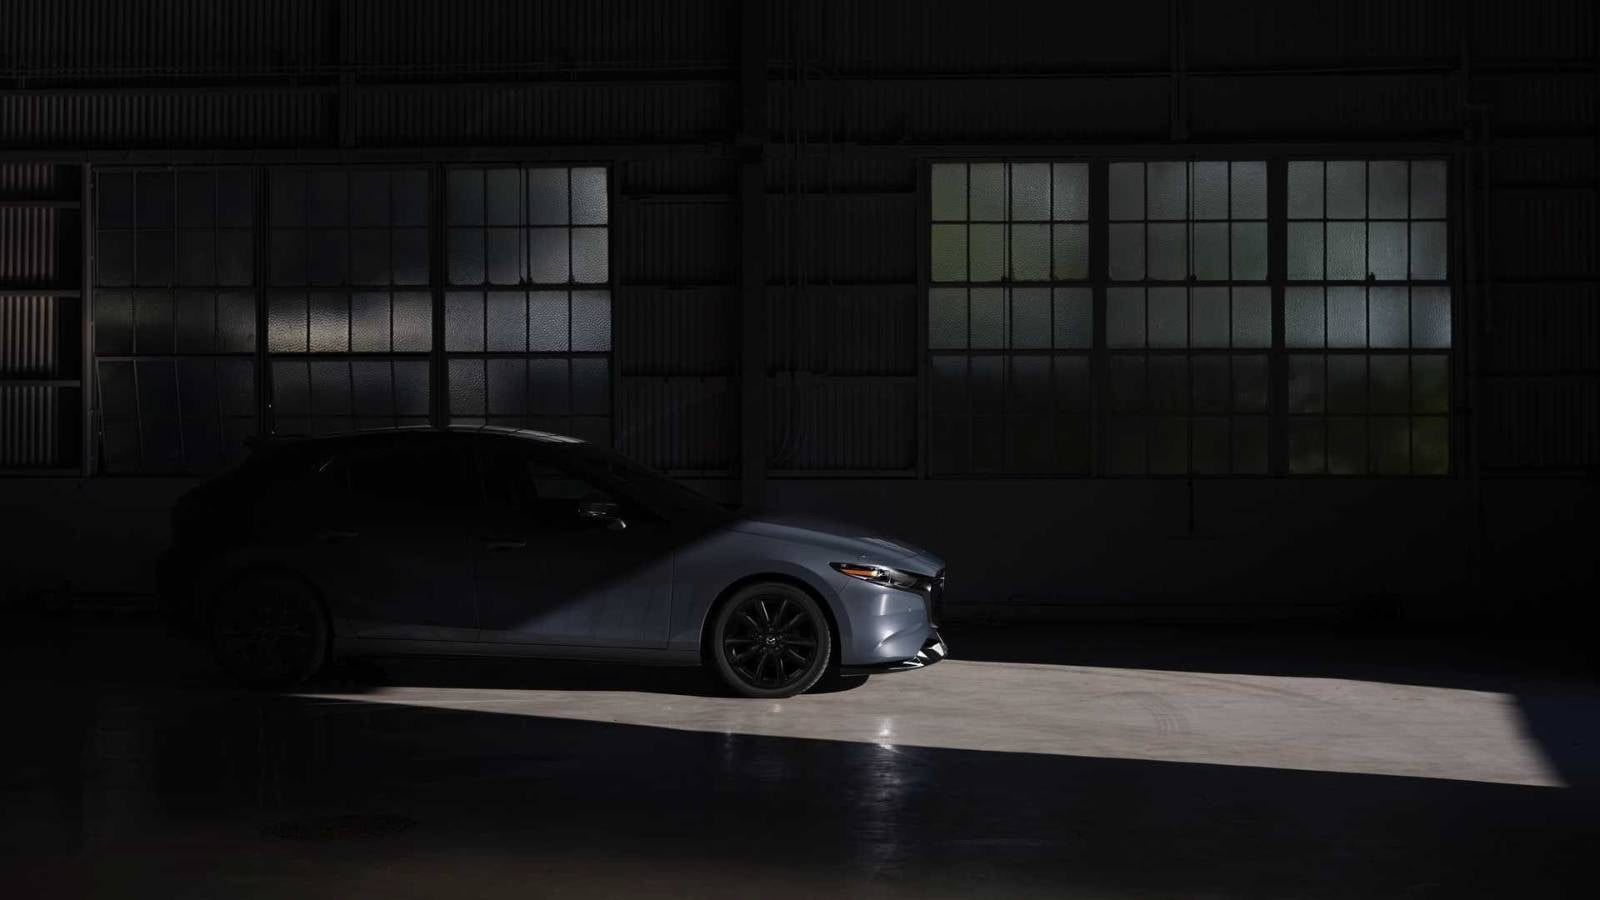 Mazda has given the 3 a turbo